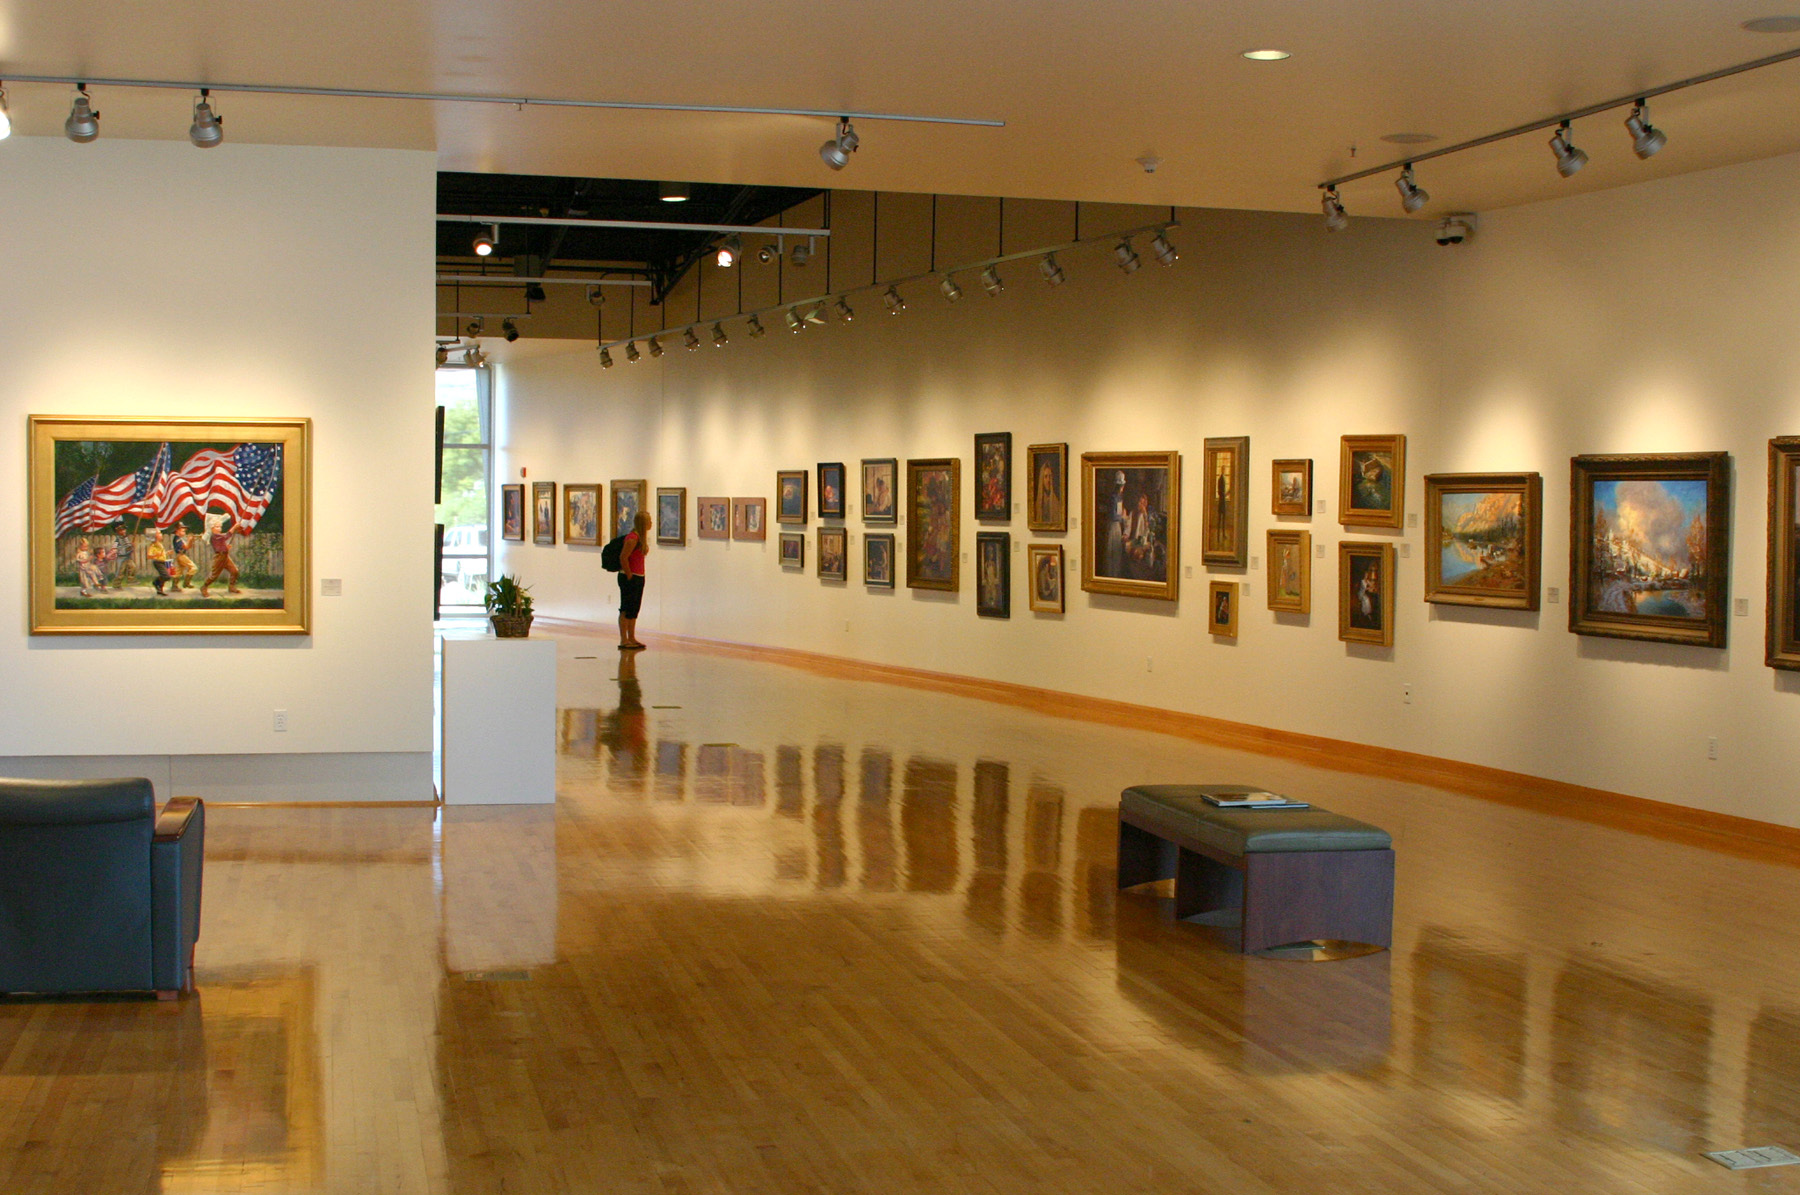 Photo Galleries Art galleries are known for